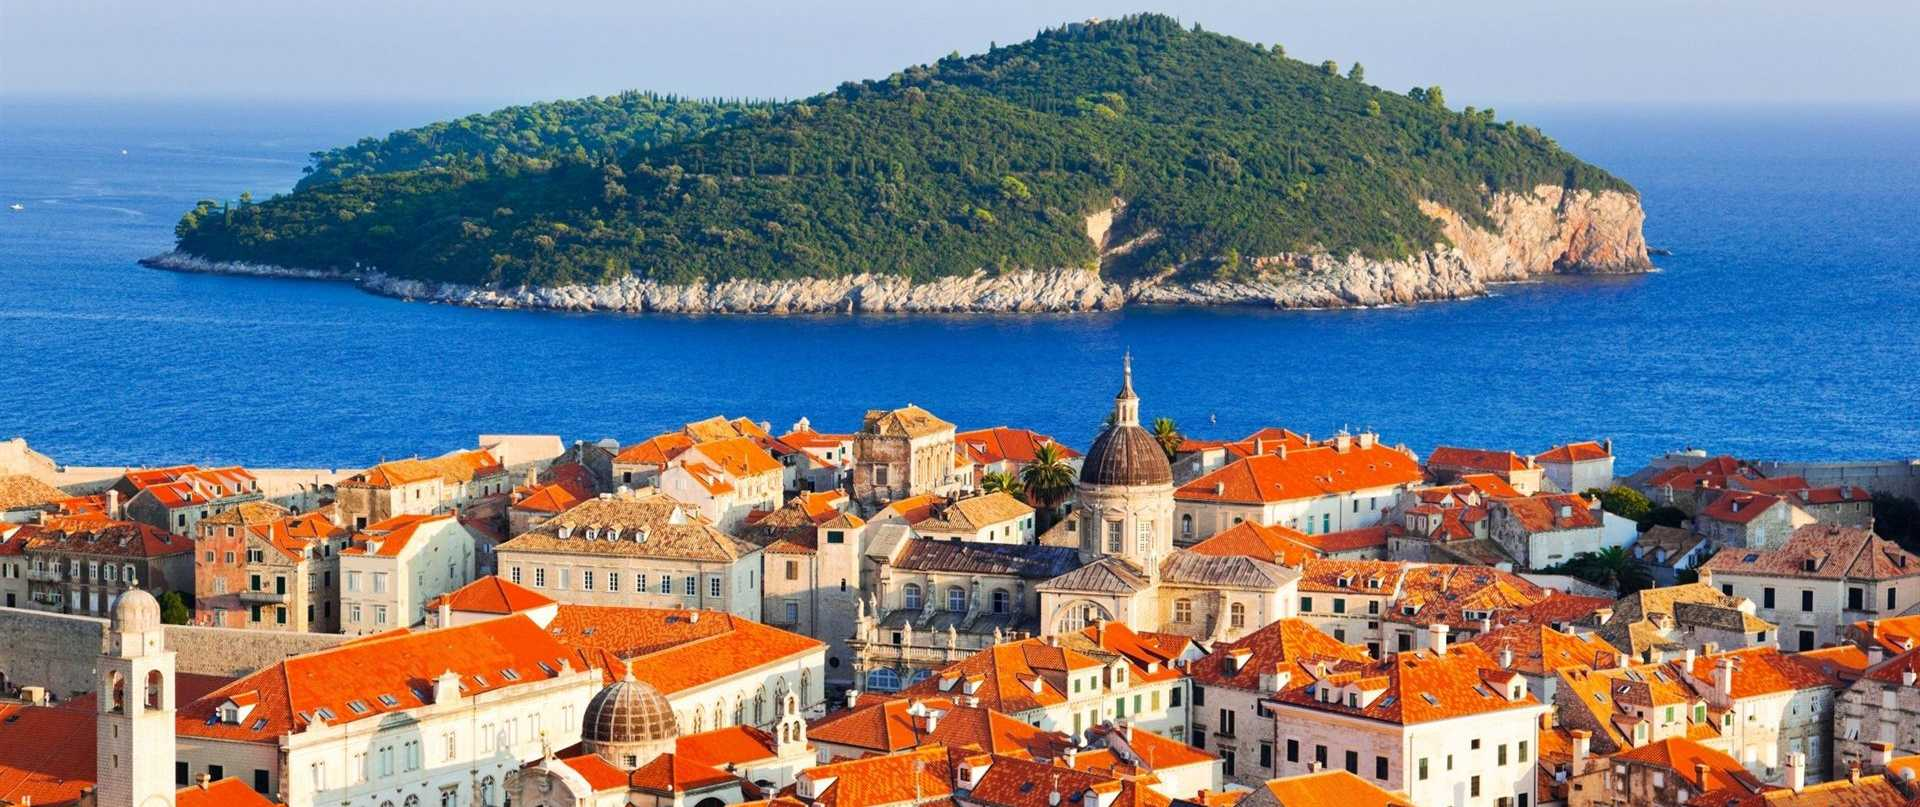 dubrovnik-and-island-in-croatia-jpg-1920x807_default